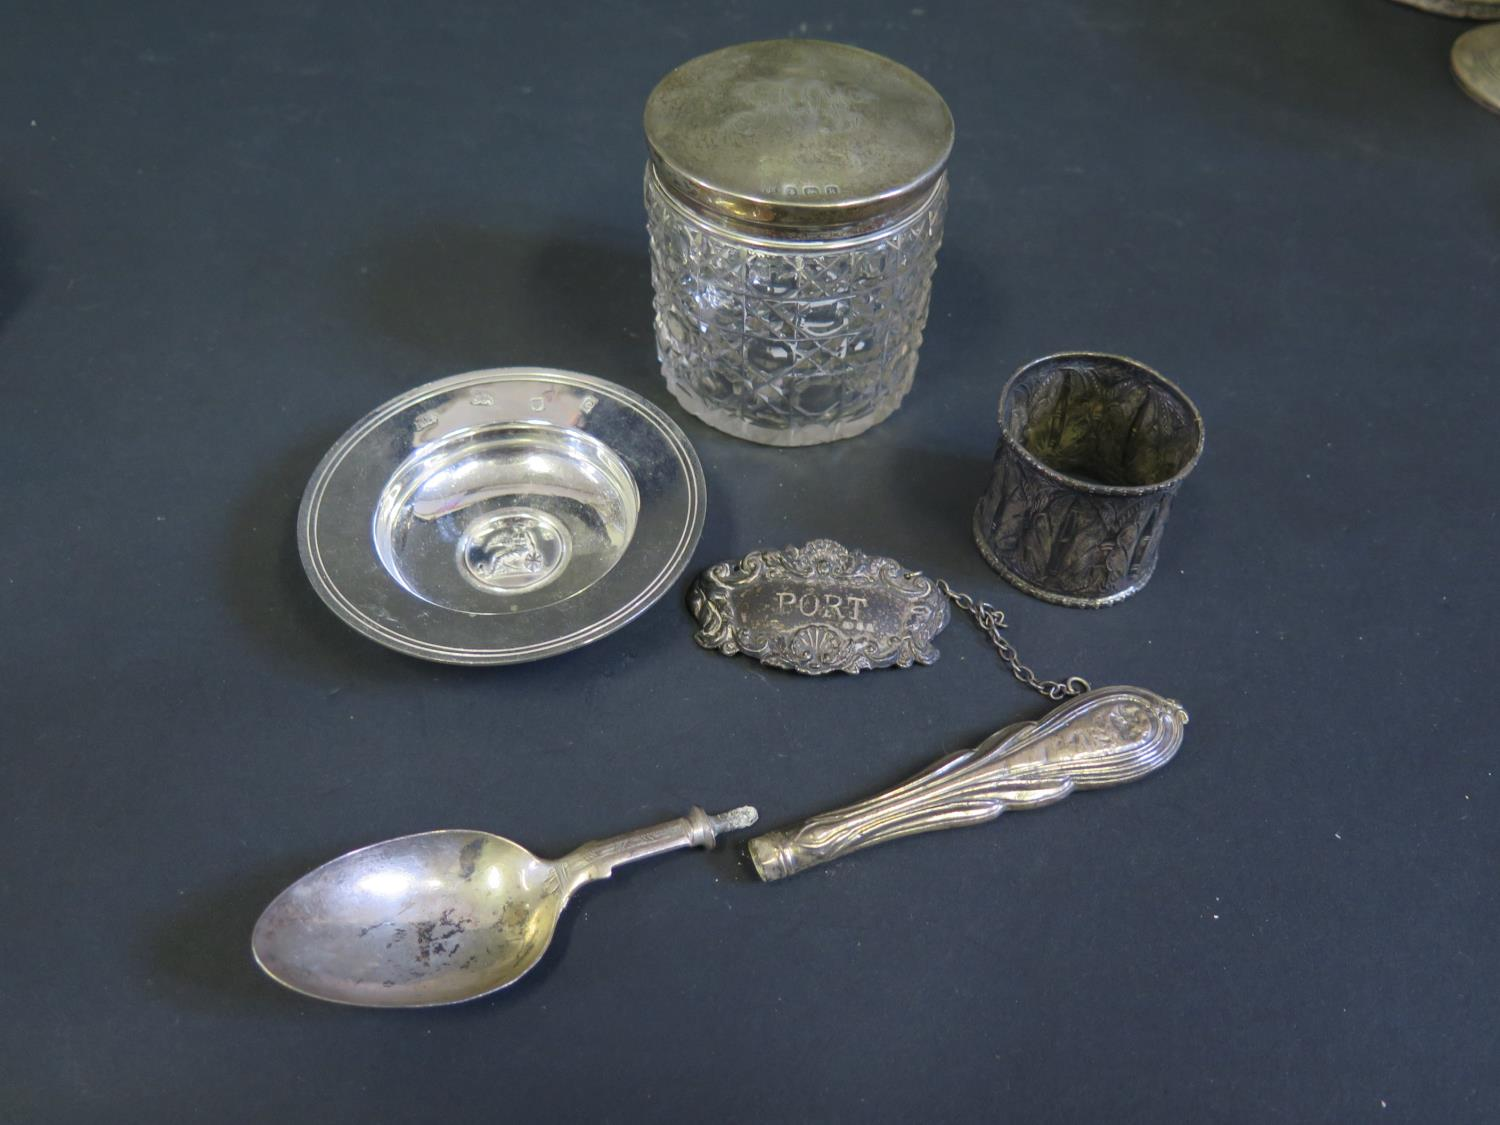 Lot 106 - A Modern Silver Armada Dish, silver PORT label, silver top cut glass dressing table pot and other